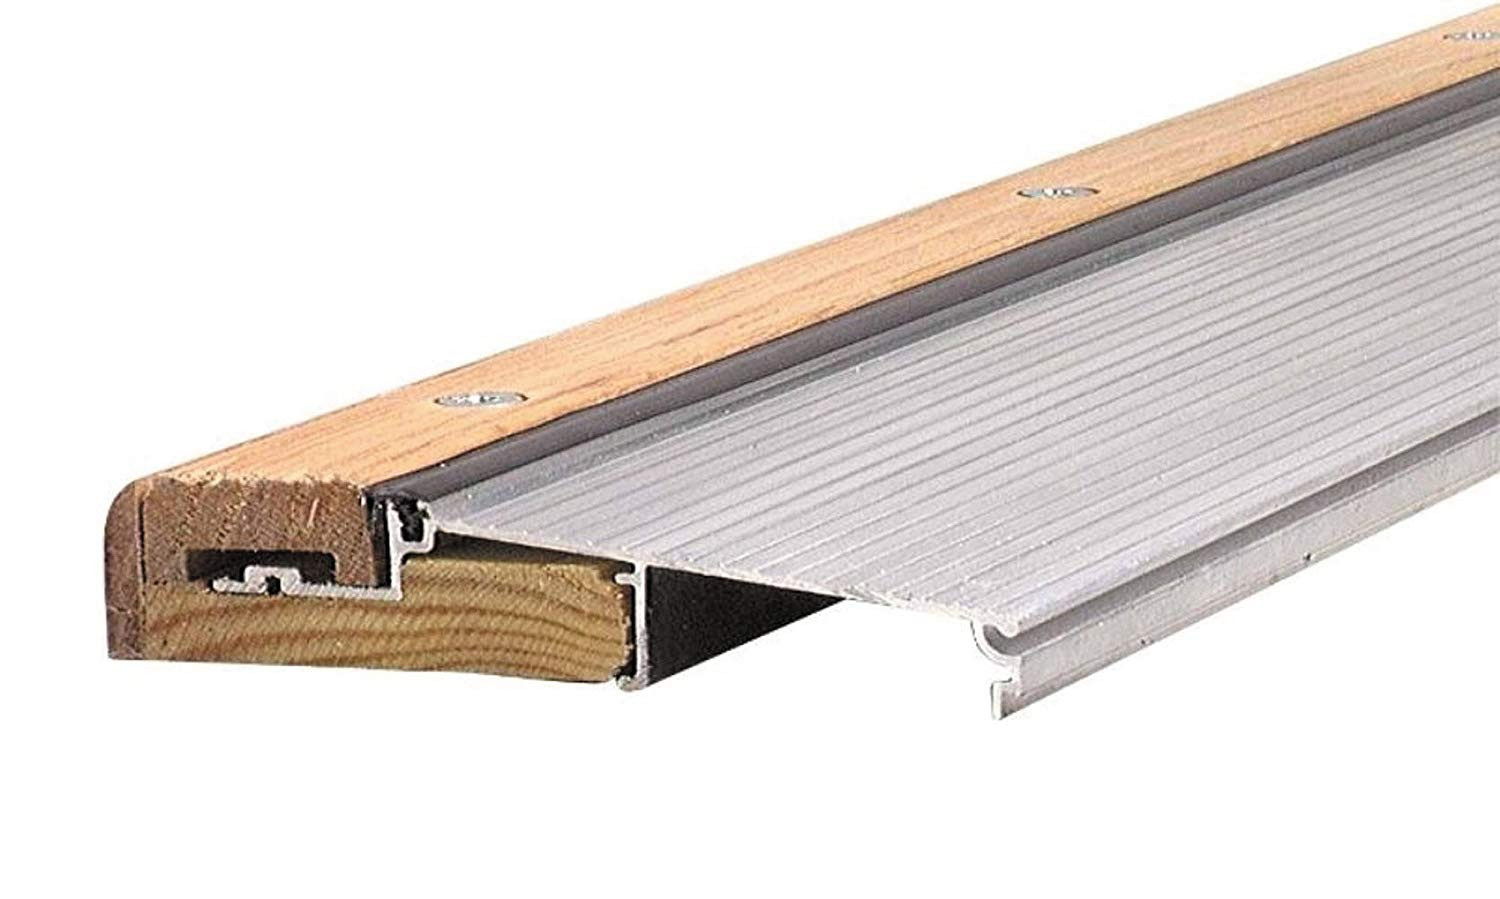 Hardwood Floor Exterior Door Transition Of M D Building Products 78600 1 1 8 Inch by 5 5 8 Inch 36 Inch Th394 Regarding M D Building Products 78600 1 1 8 Inch by 5 5 8 Inch 36 Inch Th394 Adjustable Aluminum and Hardwood Sill Inswing Mill Door Thresholds Amazon Com